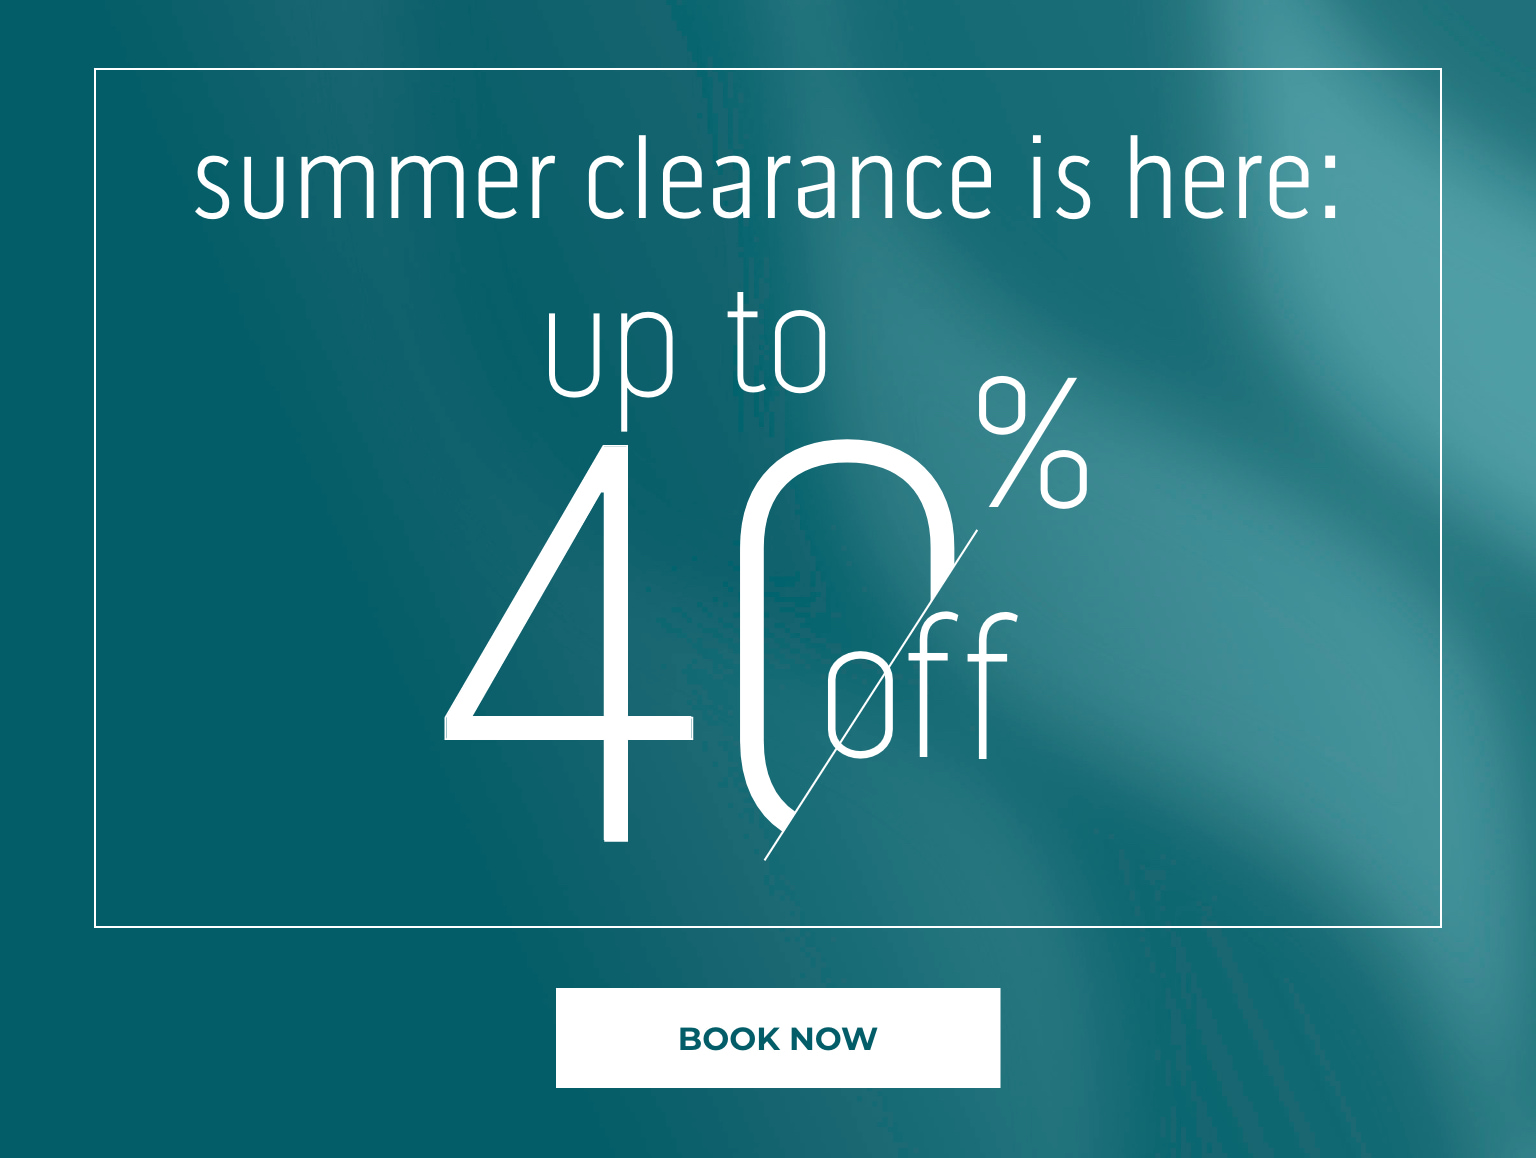 BIG savings on summer sailings are here from Princess!